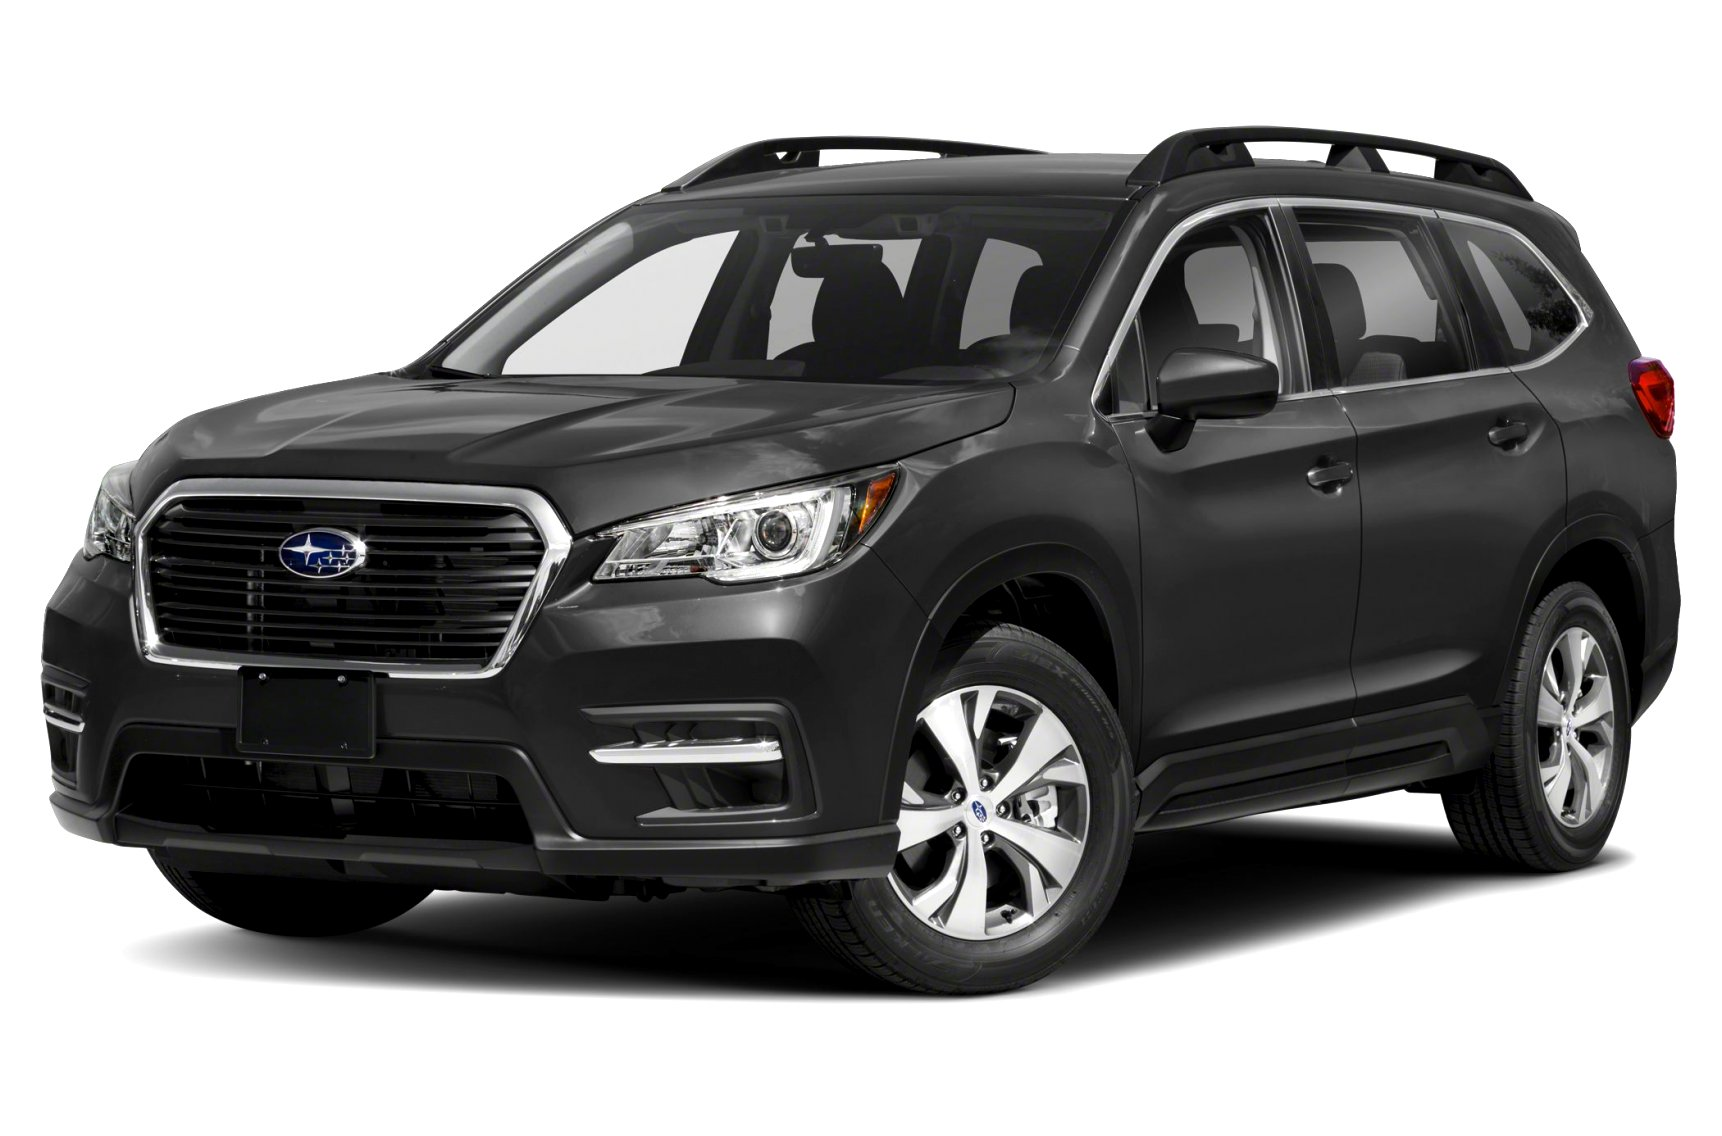 2020 subaru ascent price Interior